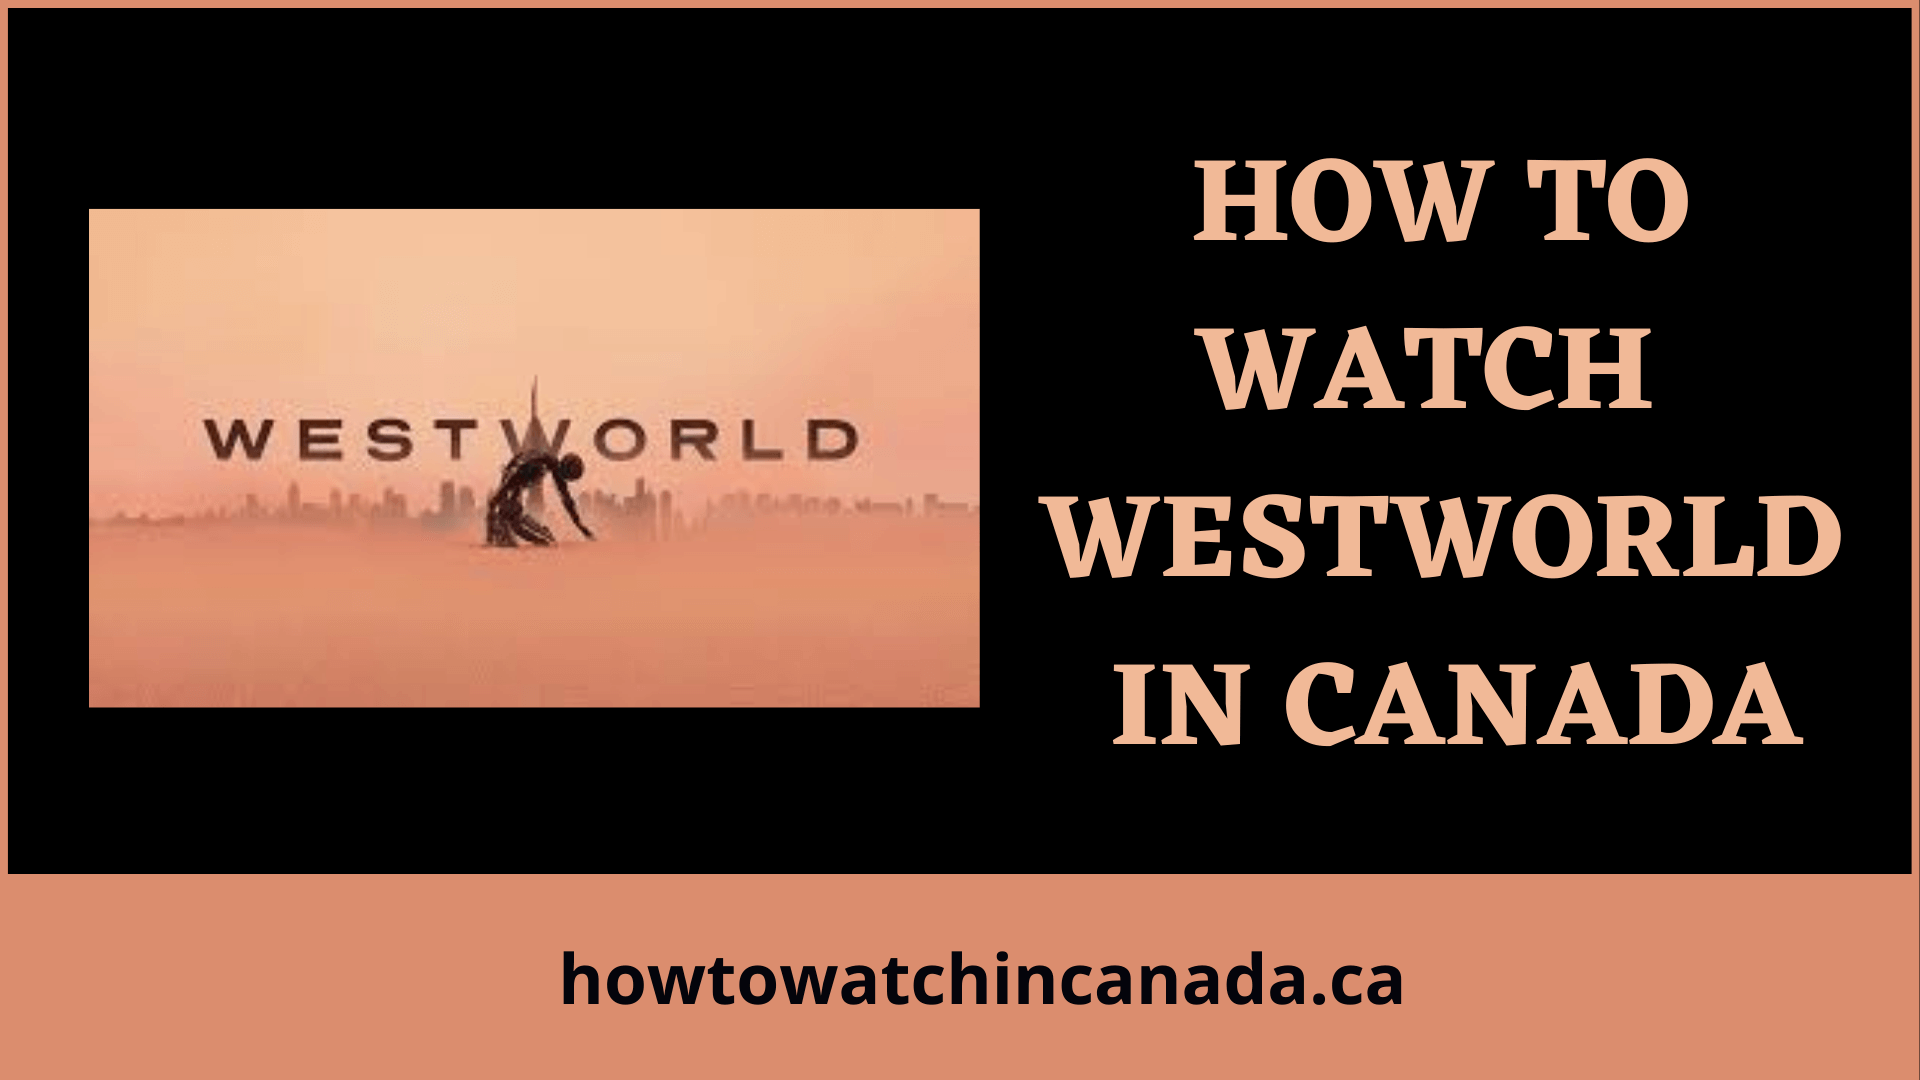 westworld-feat-how-to-watch-in-canada